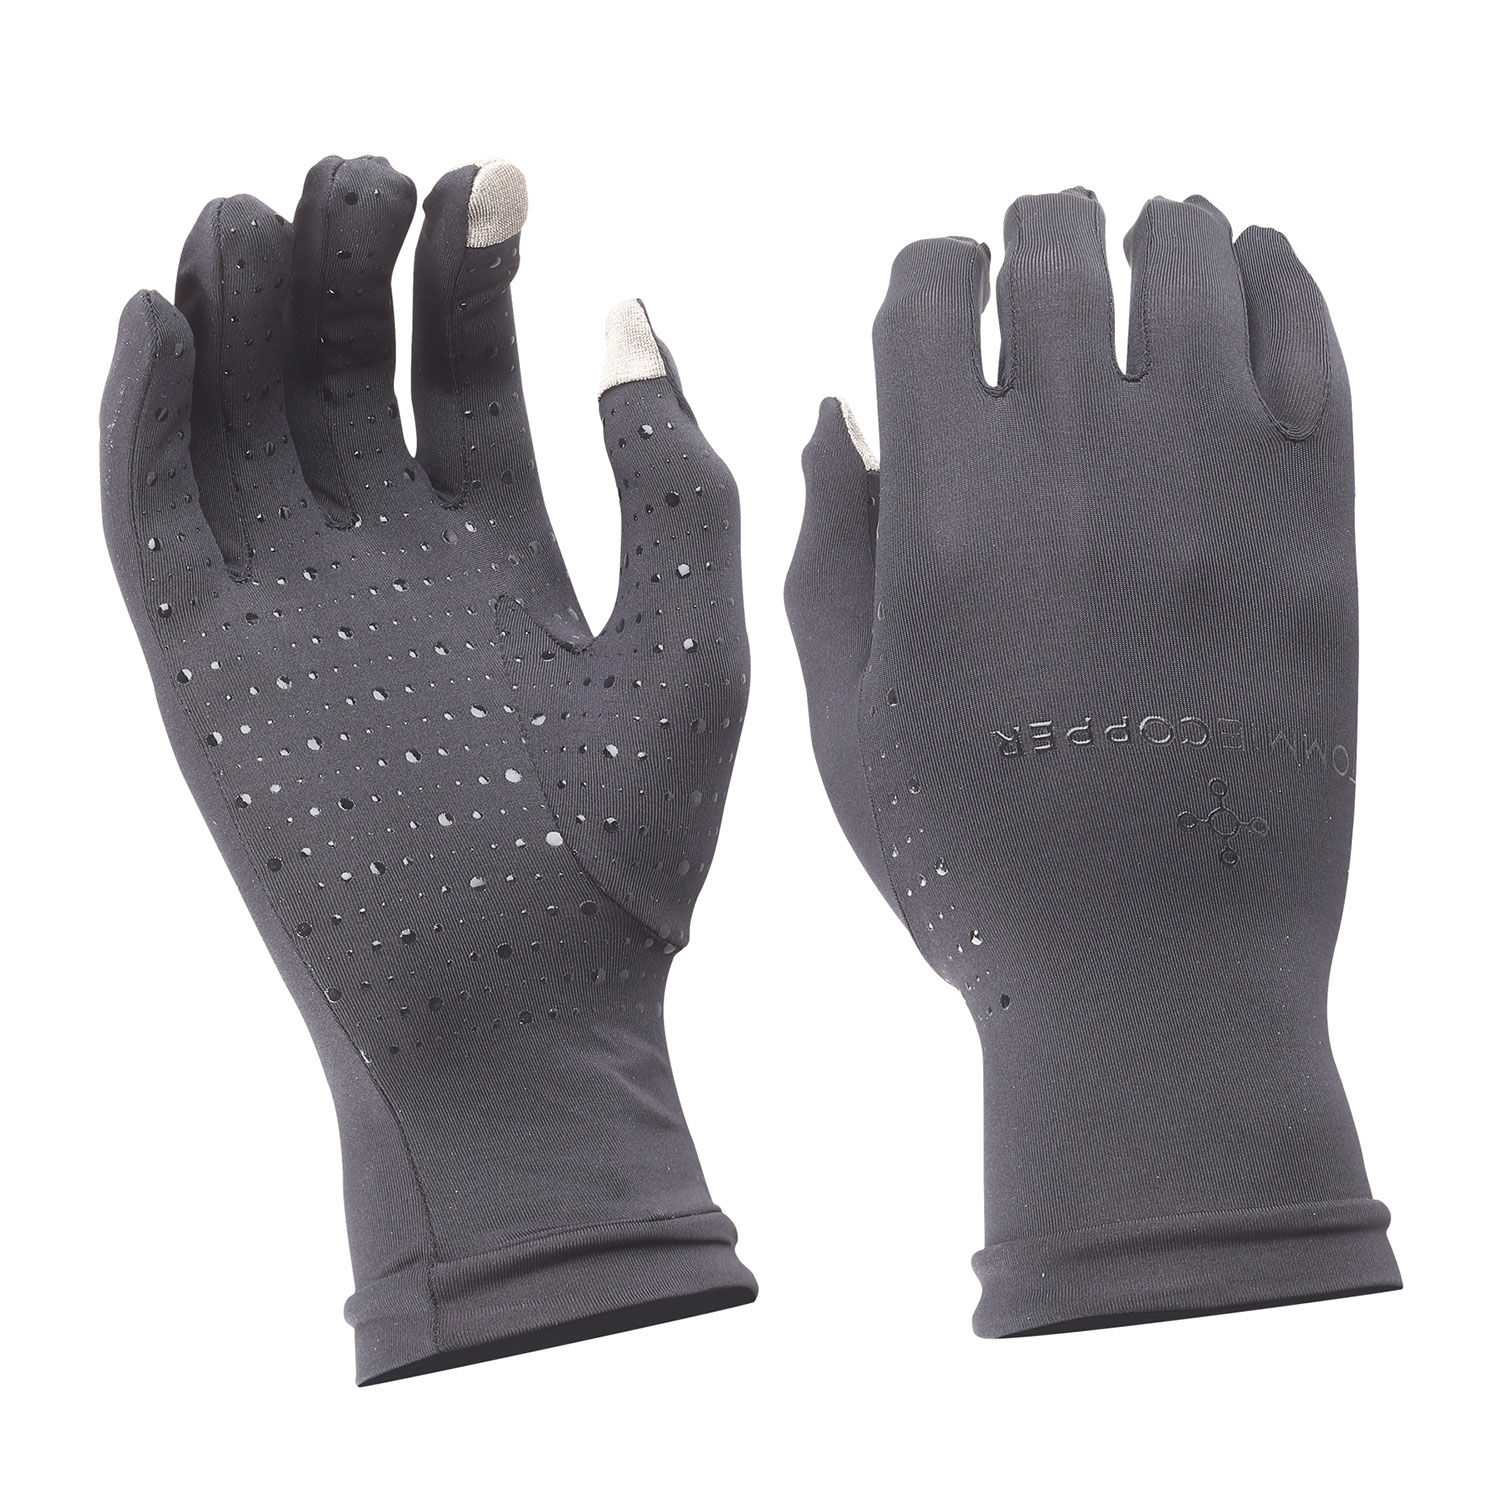 Tommie Copper Vitality Full Finger Gloves